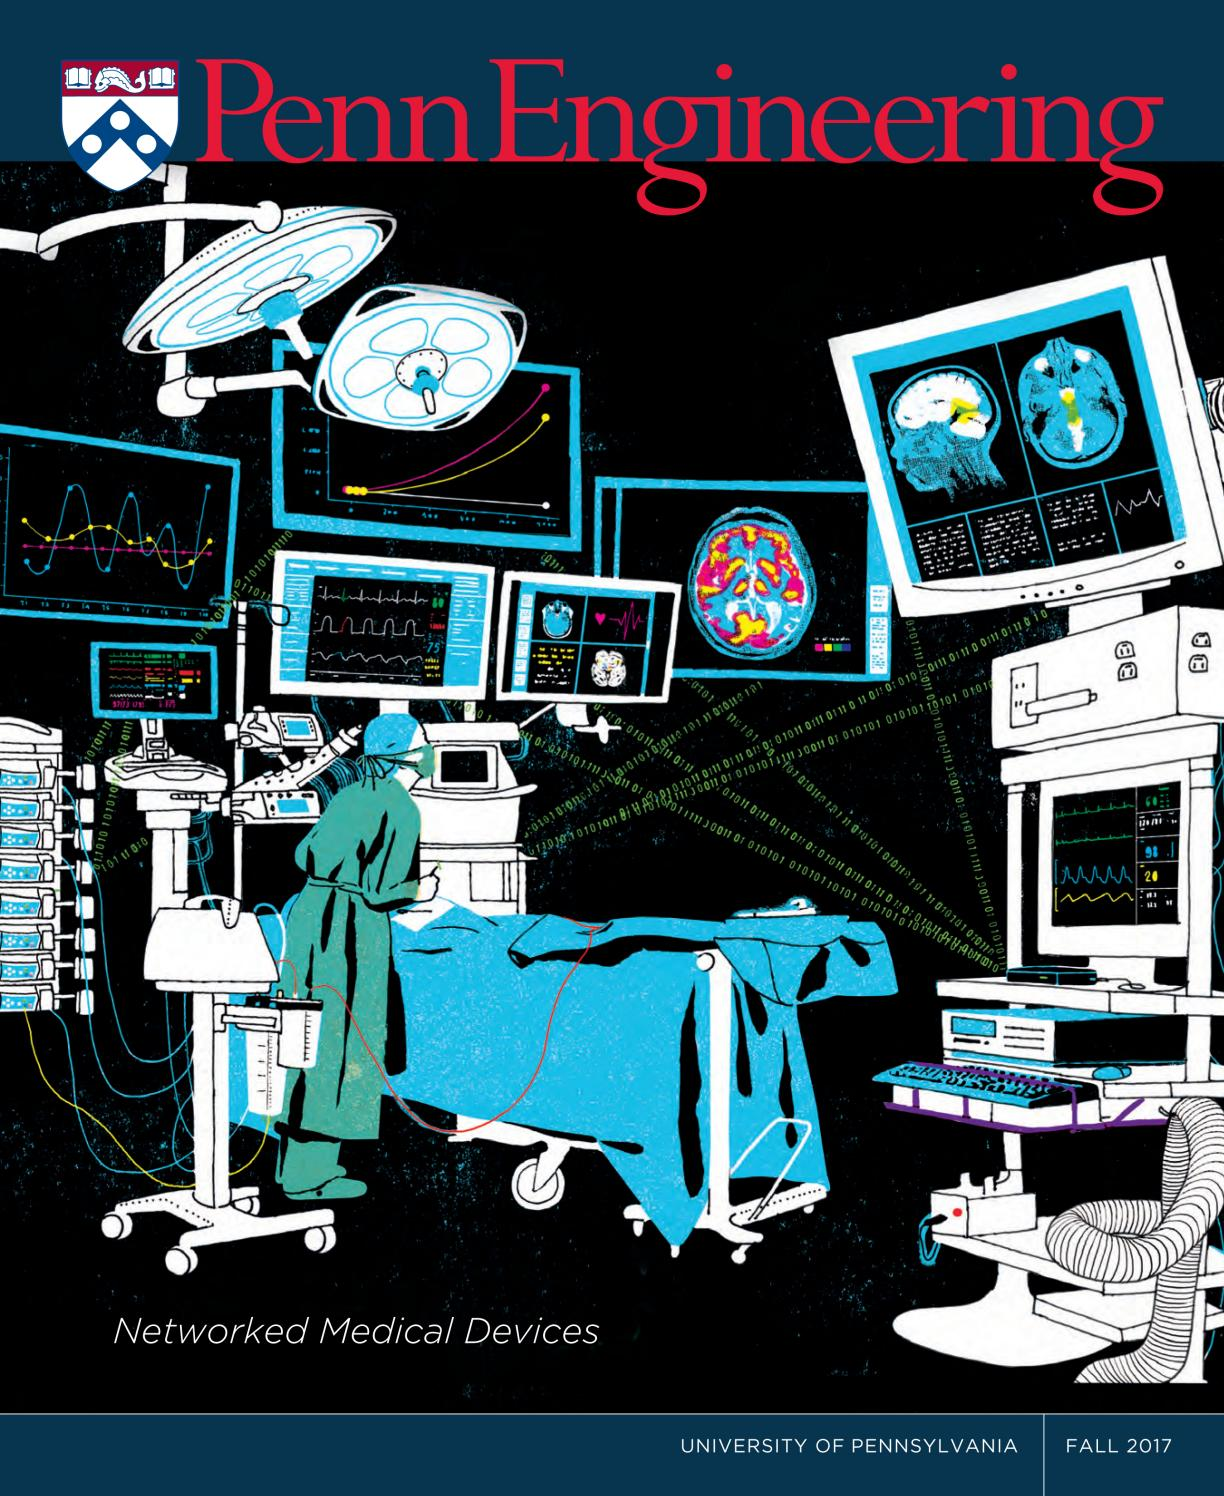 Penn Engineering Magazine Fall 2017 By Issuu Perfectly Imperfect Silicon Chips The Electronic Brains That Run